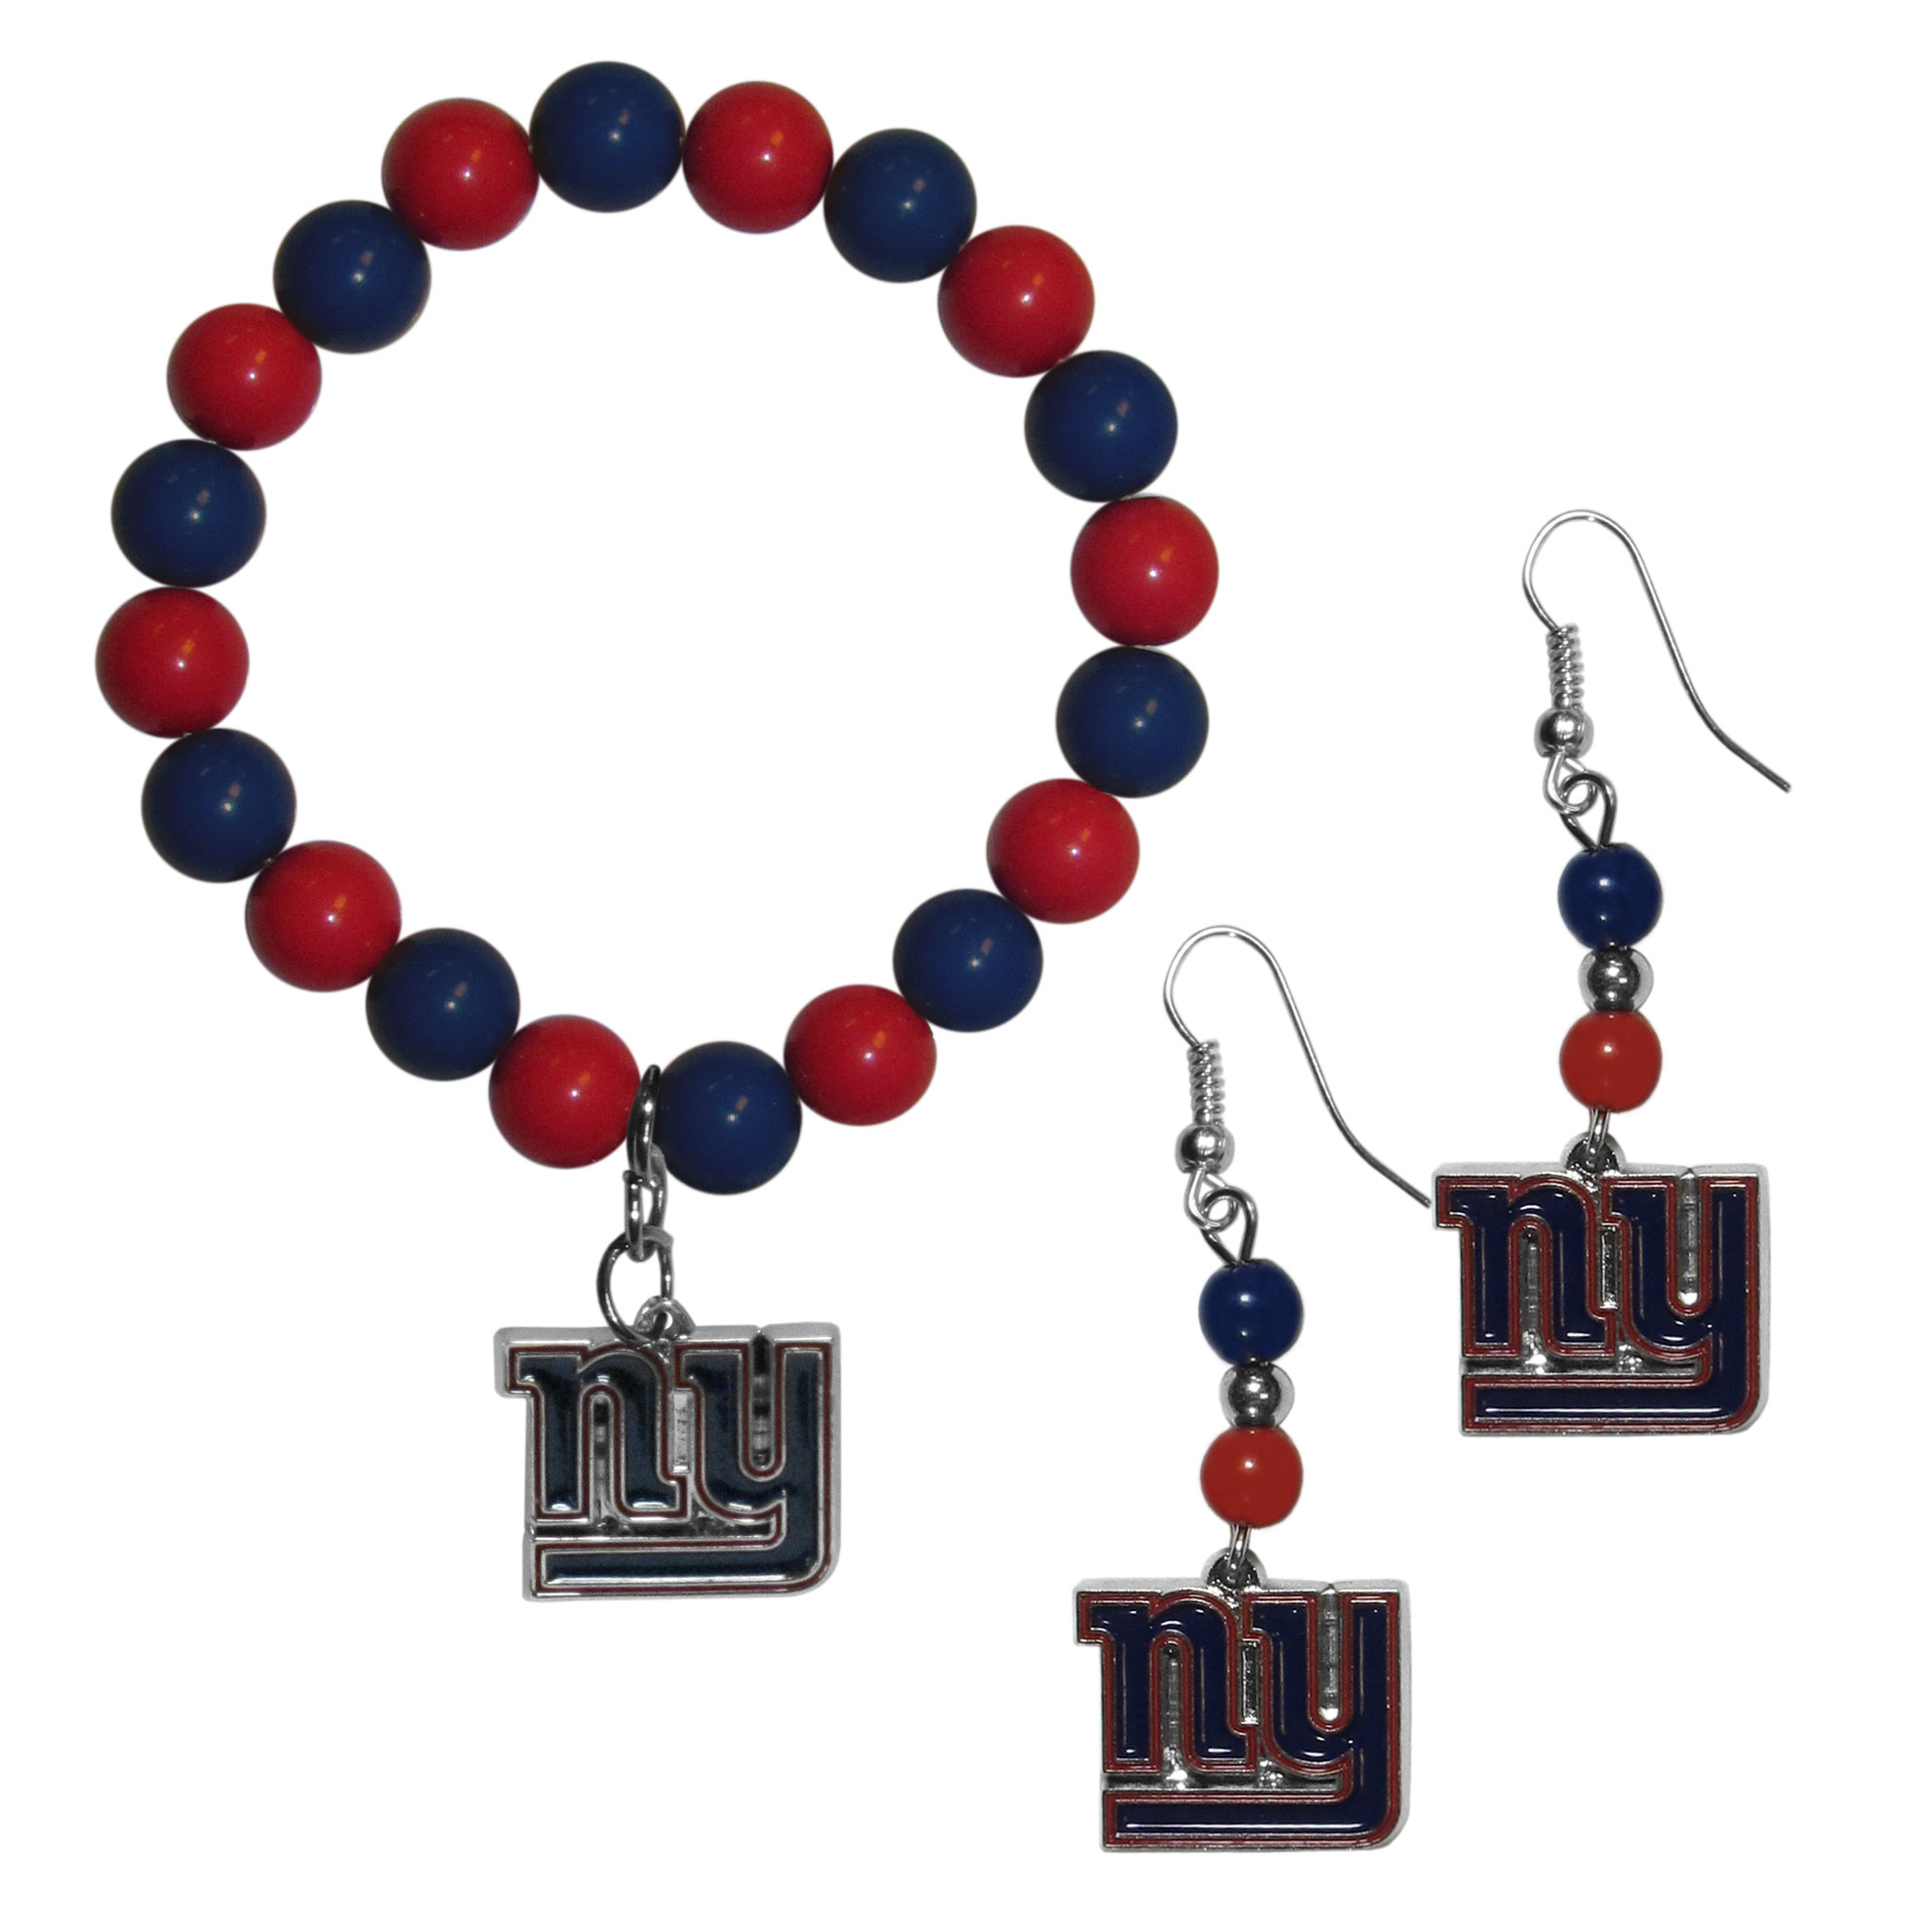 New York Giants Fan Bead Earrings and Bracelet Set - This fun and colorful New York Giants fan bead jewelry set is fun and casual with eye-catching beads in bright team colors. The fashionable dangle earrings feature a team colored beads that drop down to a carved and enameled charm. The stretch bracelet has larger matching beads that make a striking statement and have a matching team charm. These sassy yet sporty jewelry pieces make a perfect gift for any female fan. Spice up your game-day outfit with these fun colorful earrings and bracelet that are also cute enough for any day.